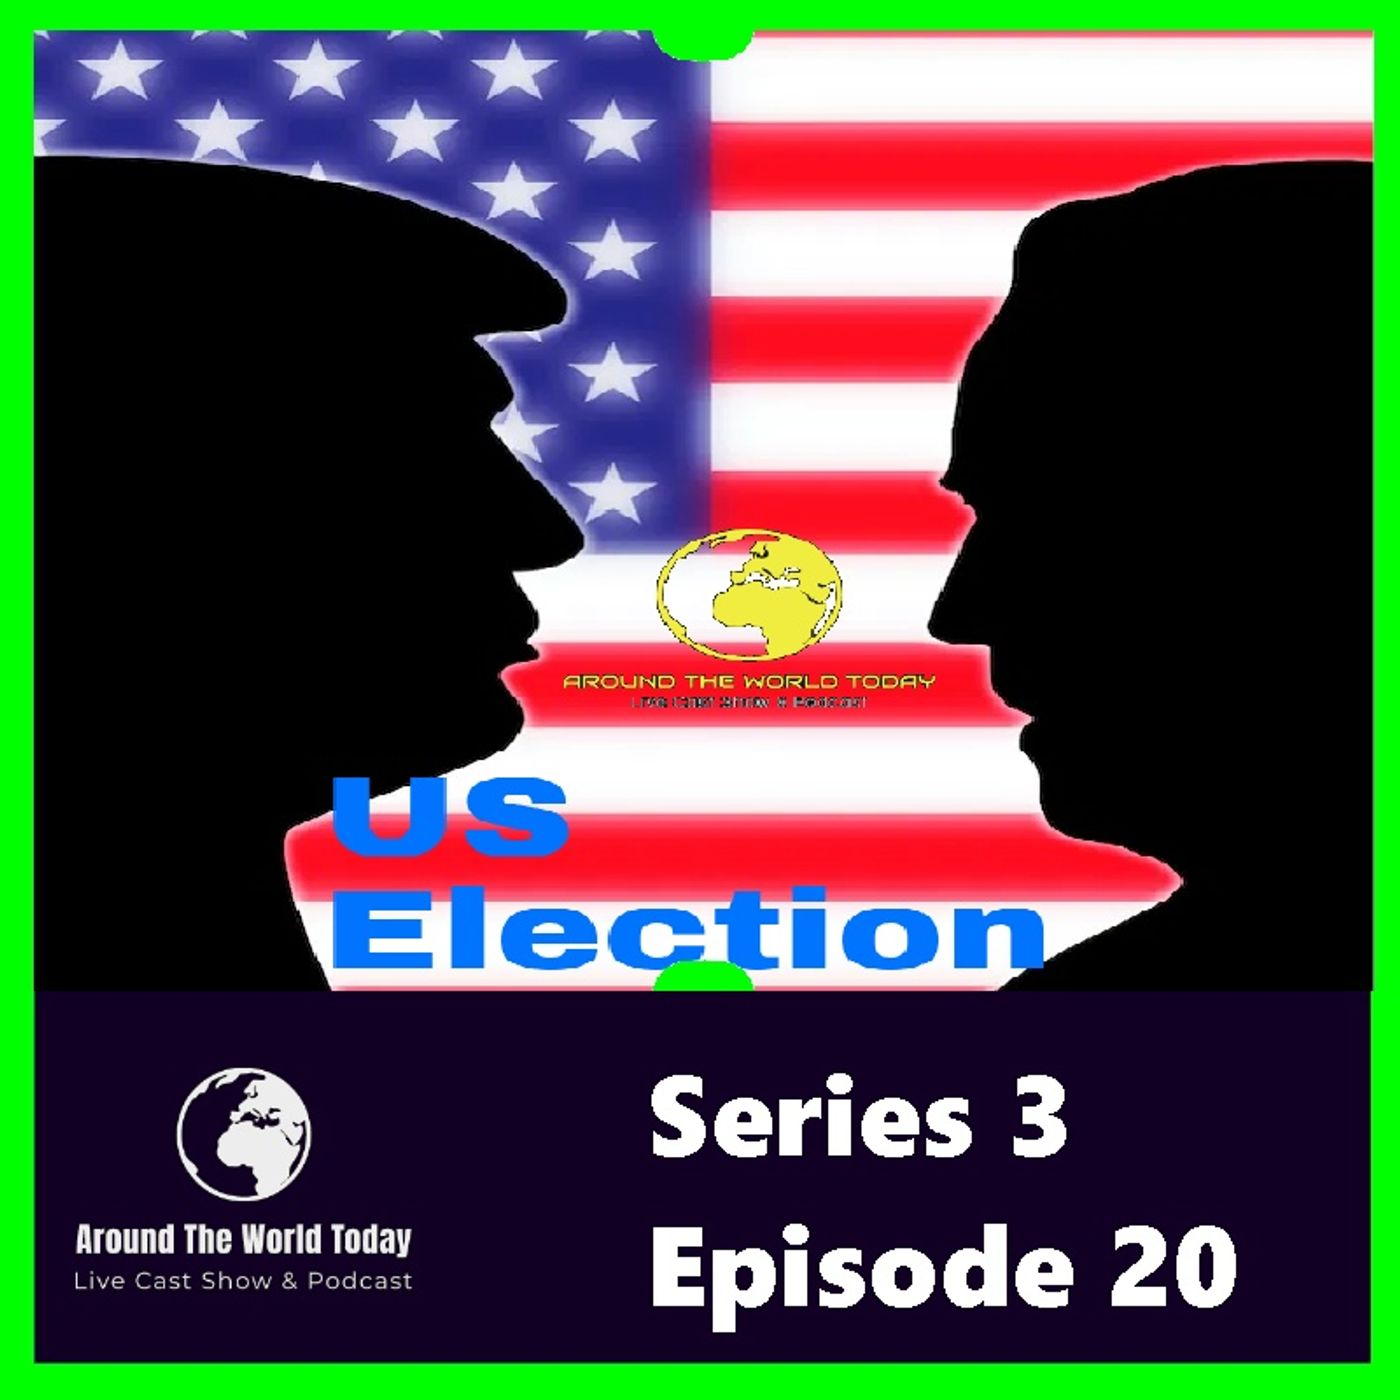 Around the World Today Series 3 Episode 20 - The US Election